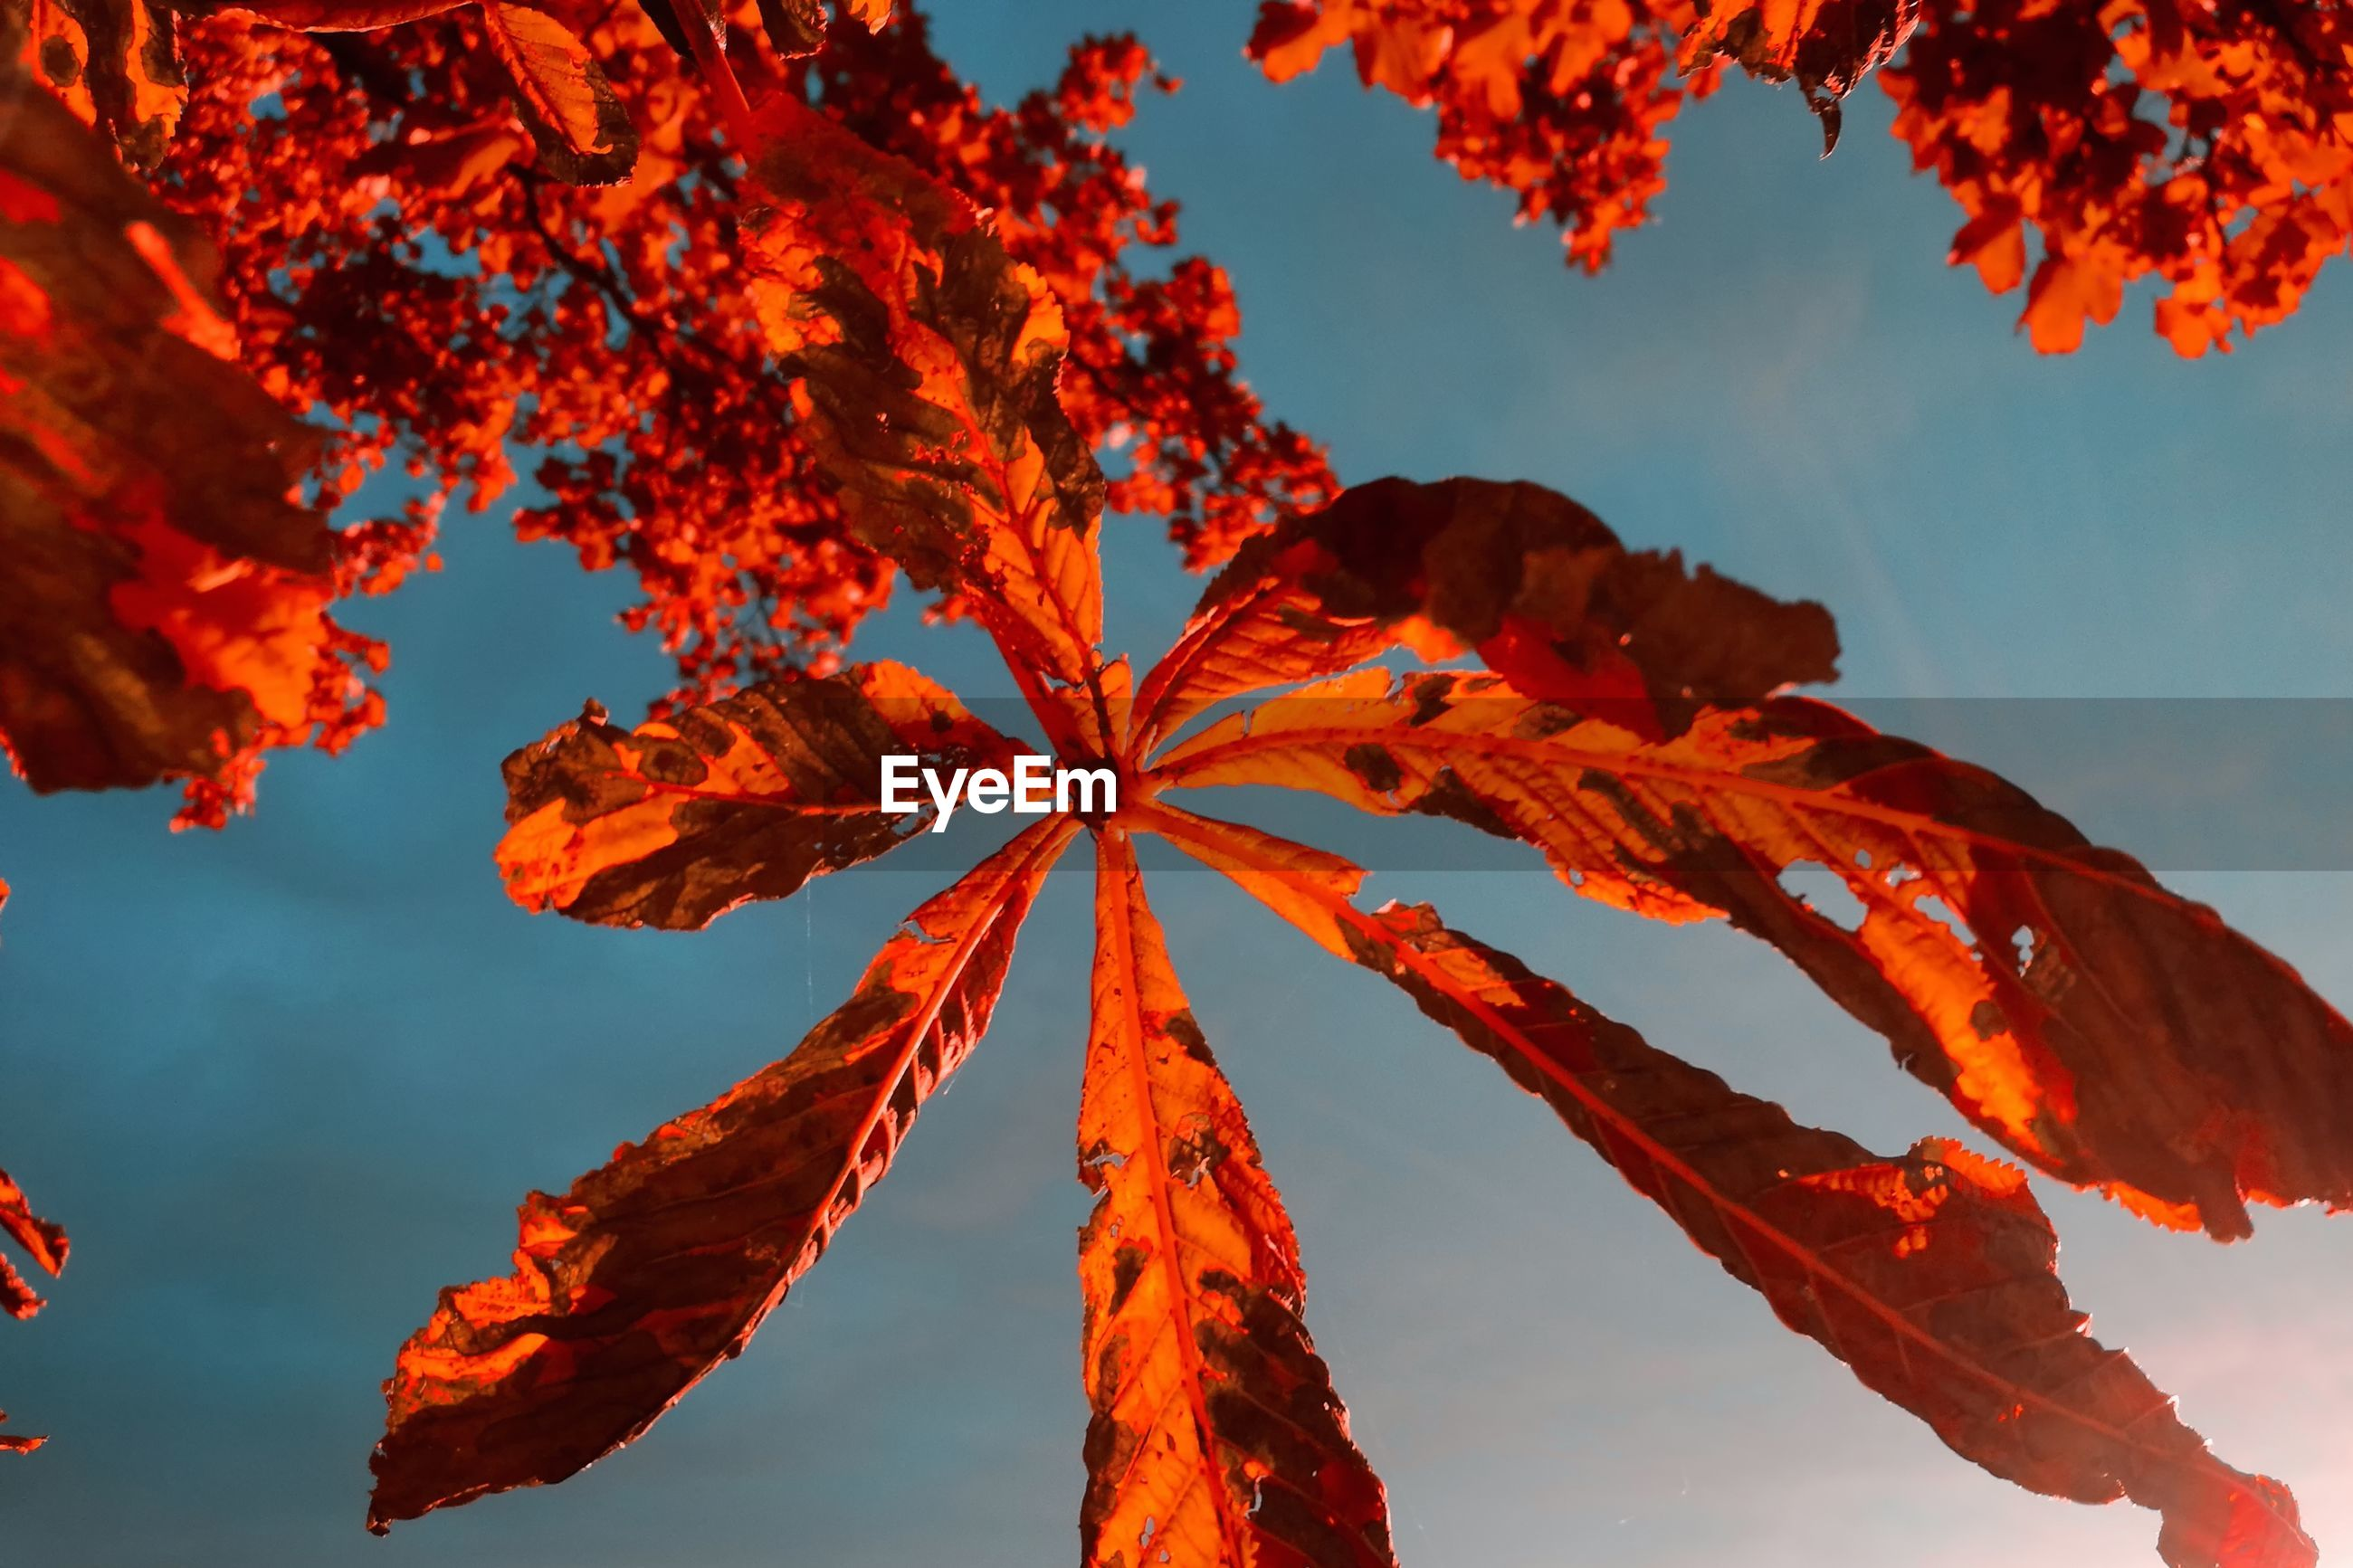 LOW ANGLE VIEW OF AUTUMN LEAVES AGAINST CLEAR BLUE SKY